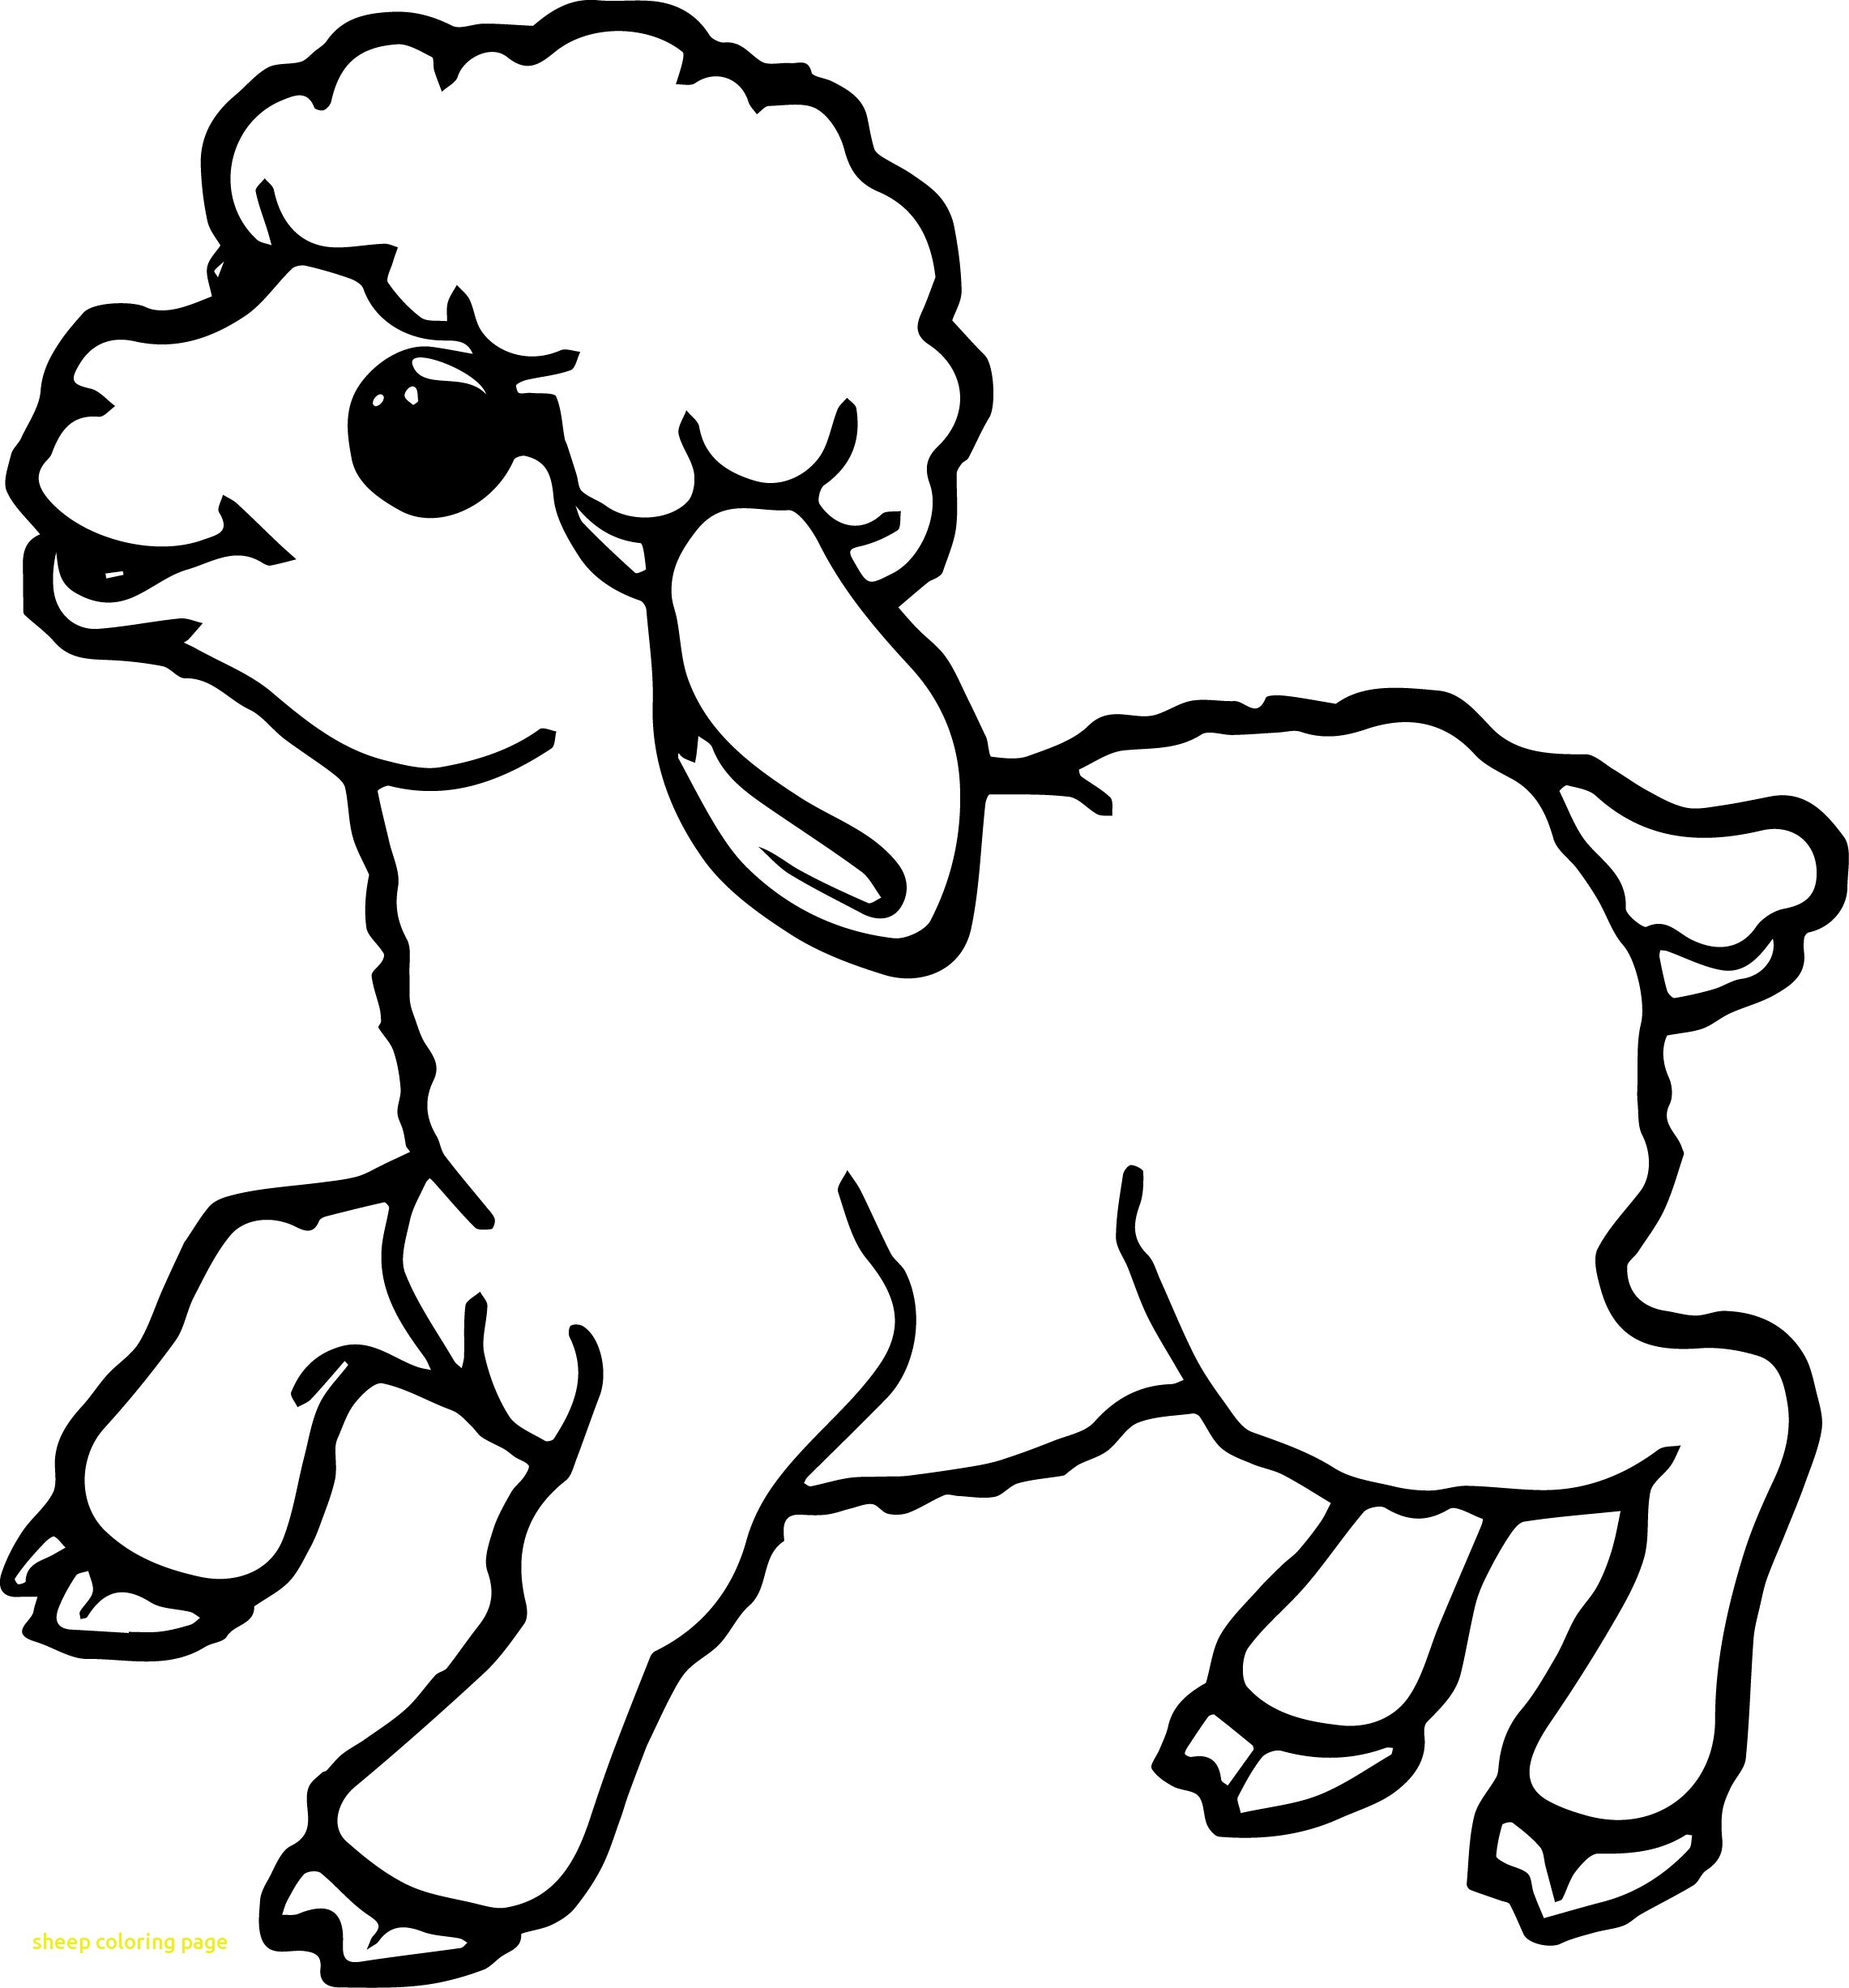 Sheep Coloring Page | Teamshania : Content Coloring Pages For - Free Printable Pictures Of Sheep